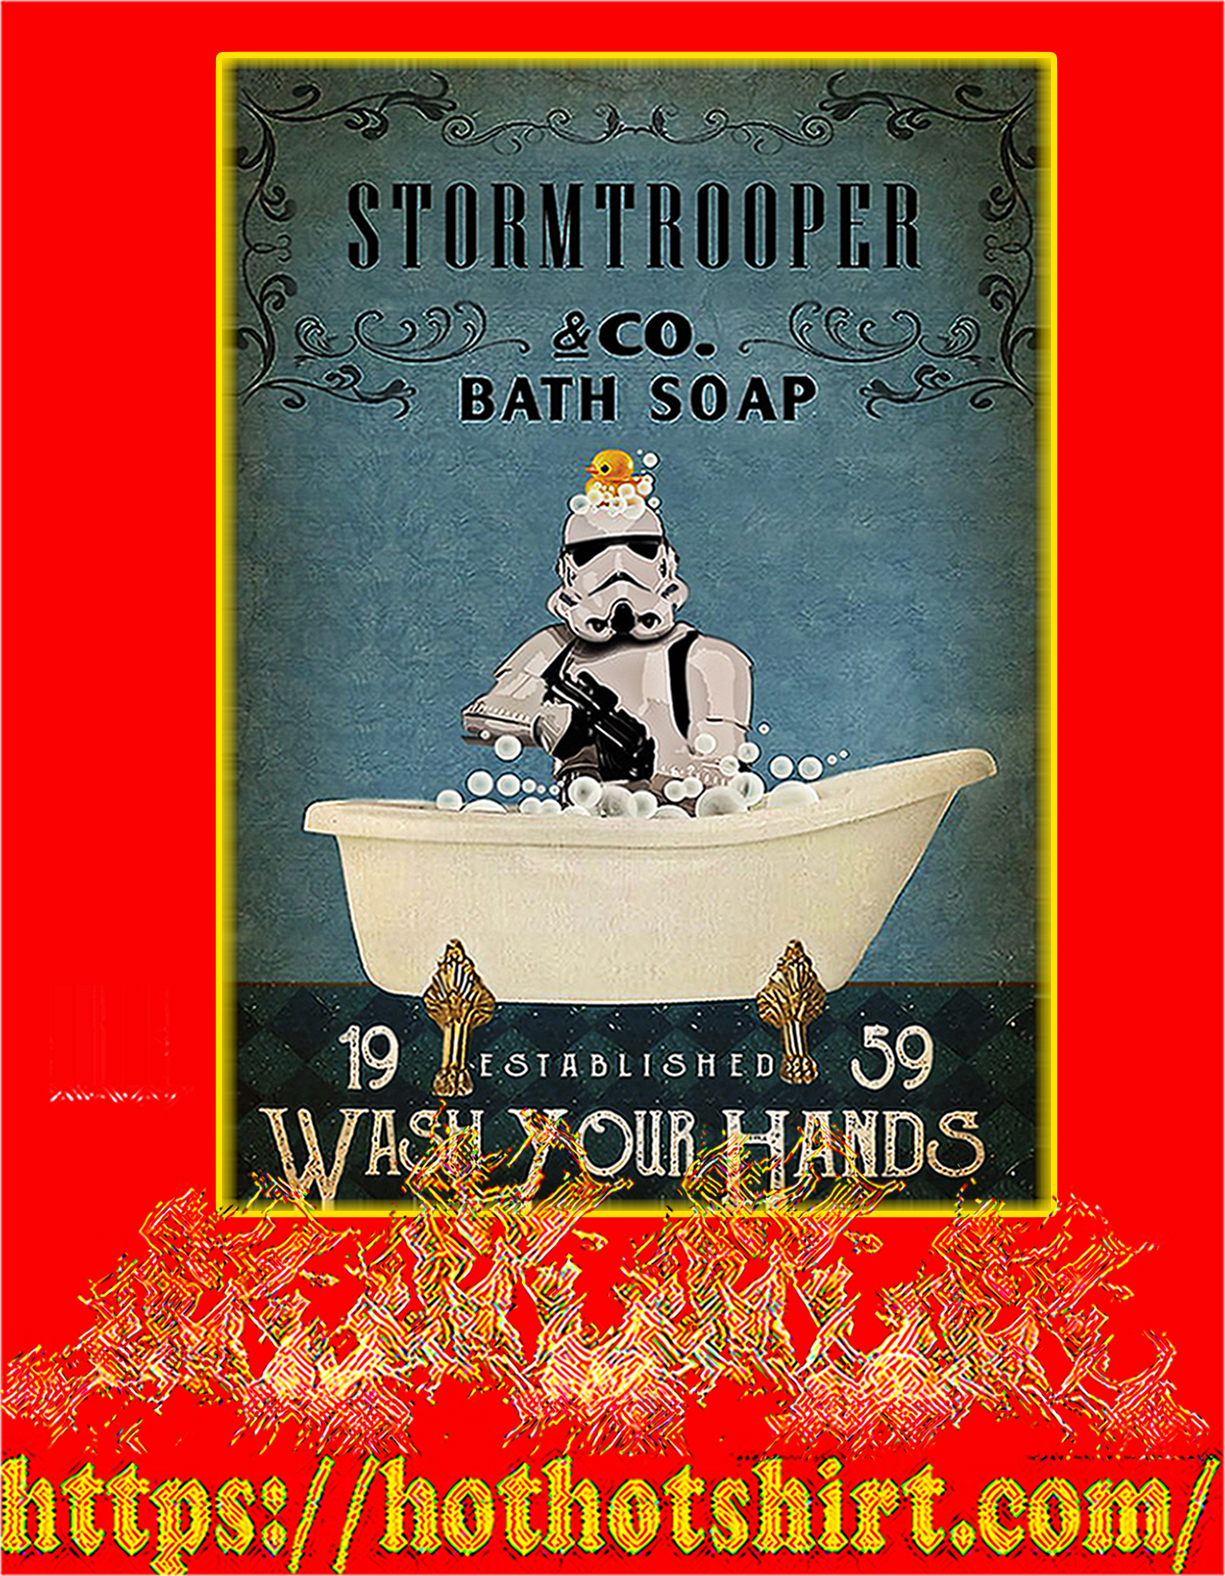 Stormtrooper co bath soap wash your hands poster - A3